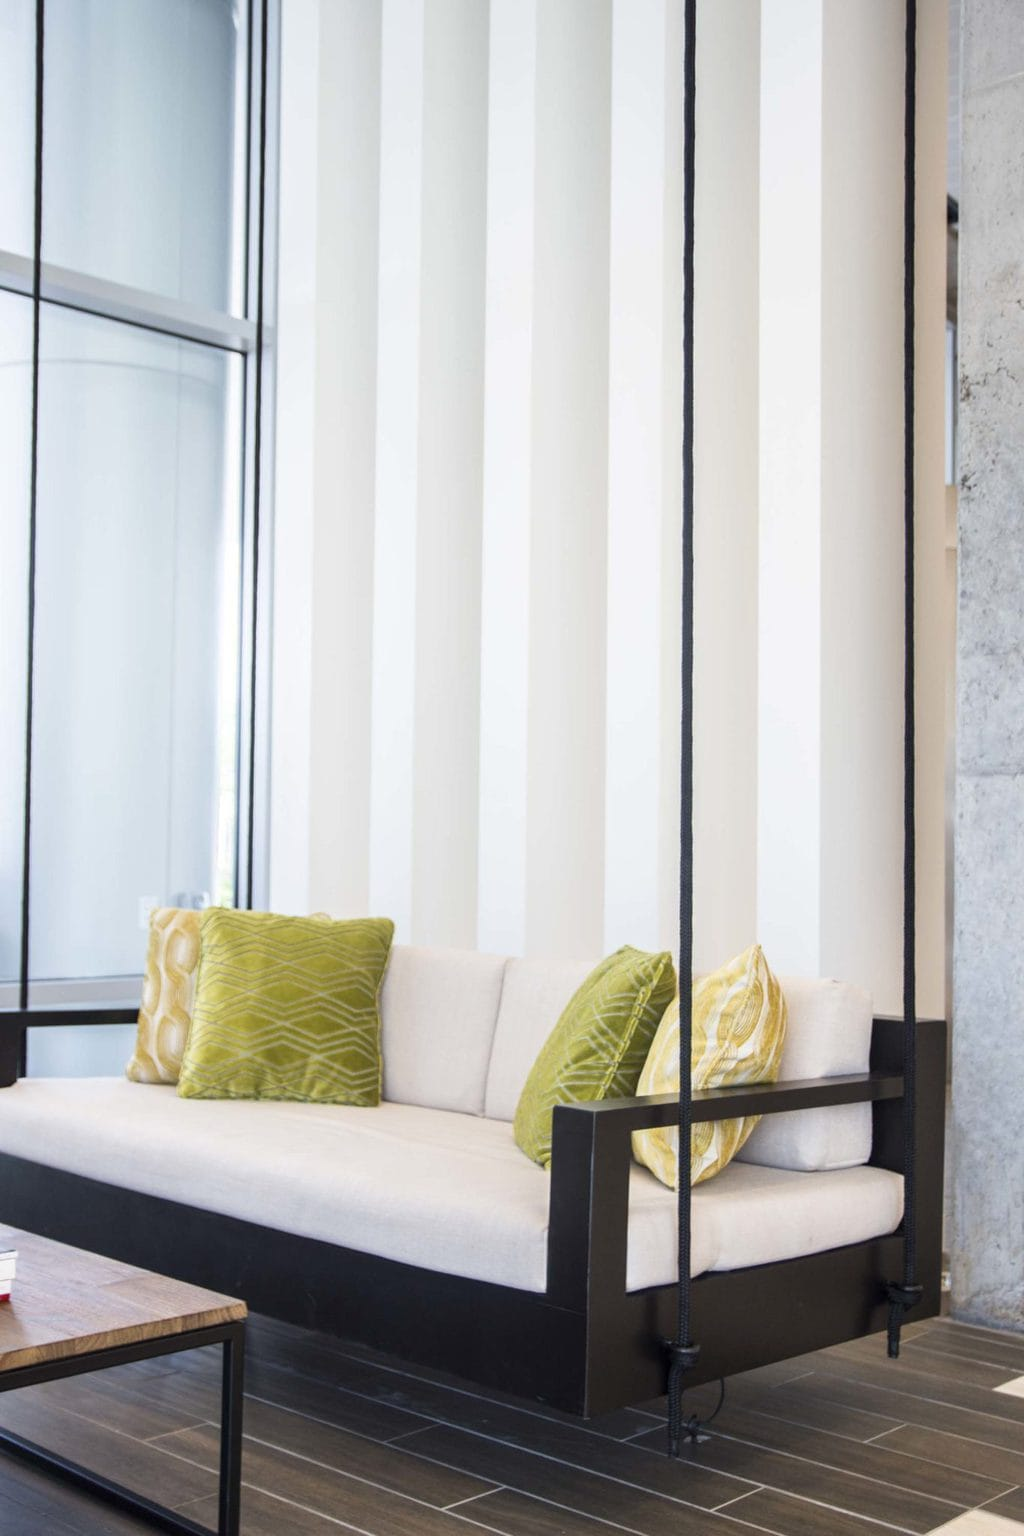 Modern hanging daybed in the new Renaissance hotel at the Atlanta airport on Thou Swell @thouswellblog